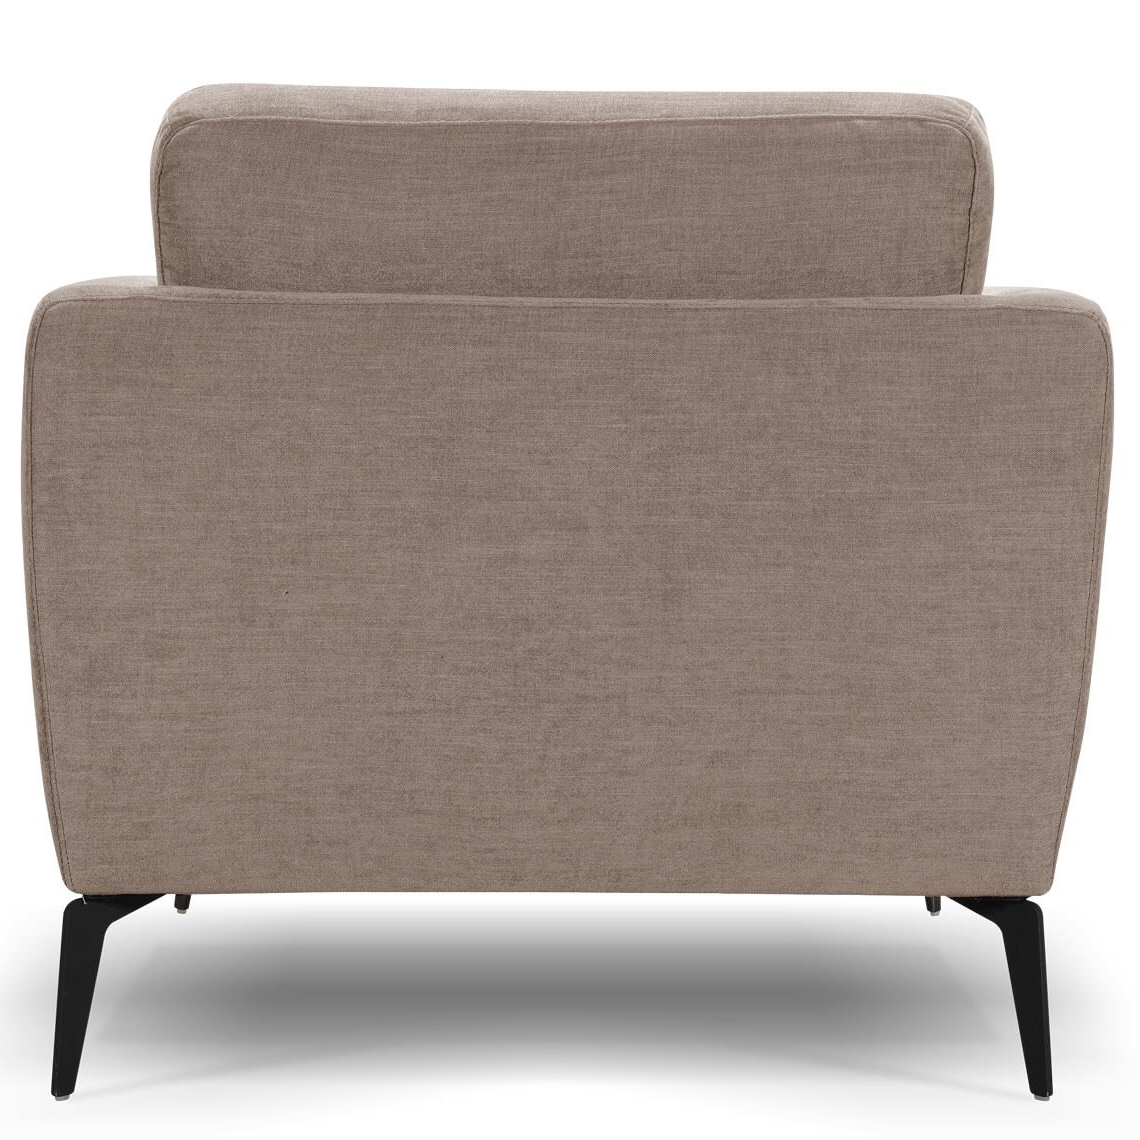 Freedom In Most Popular Attica Arm Chairs (View 12 of 20)